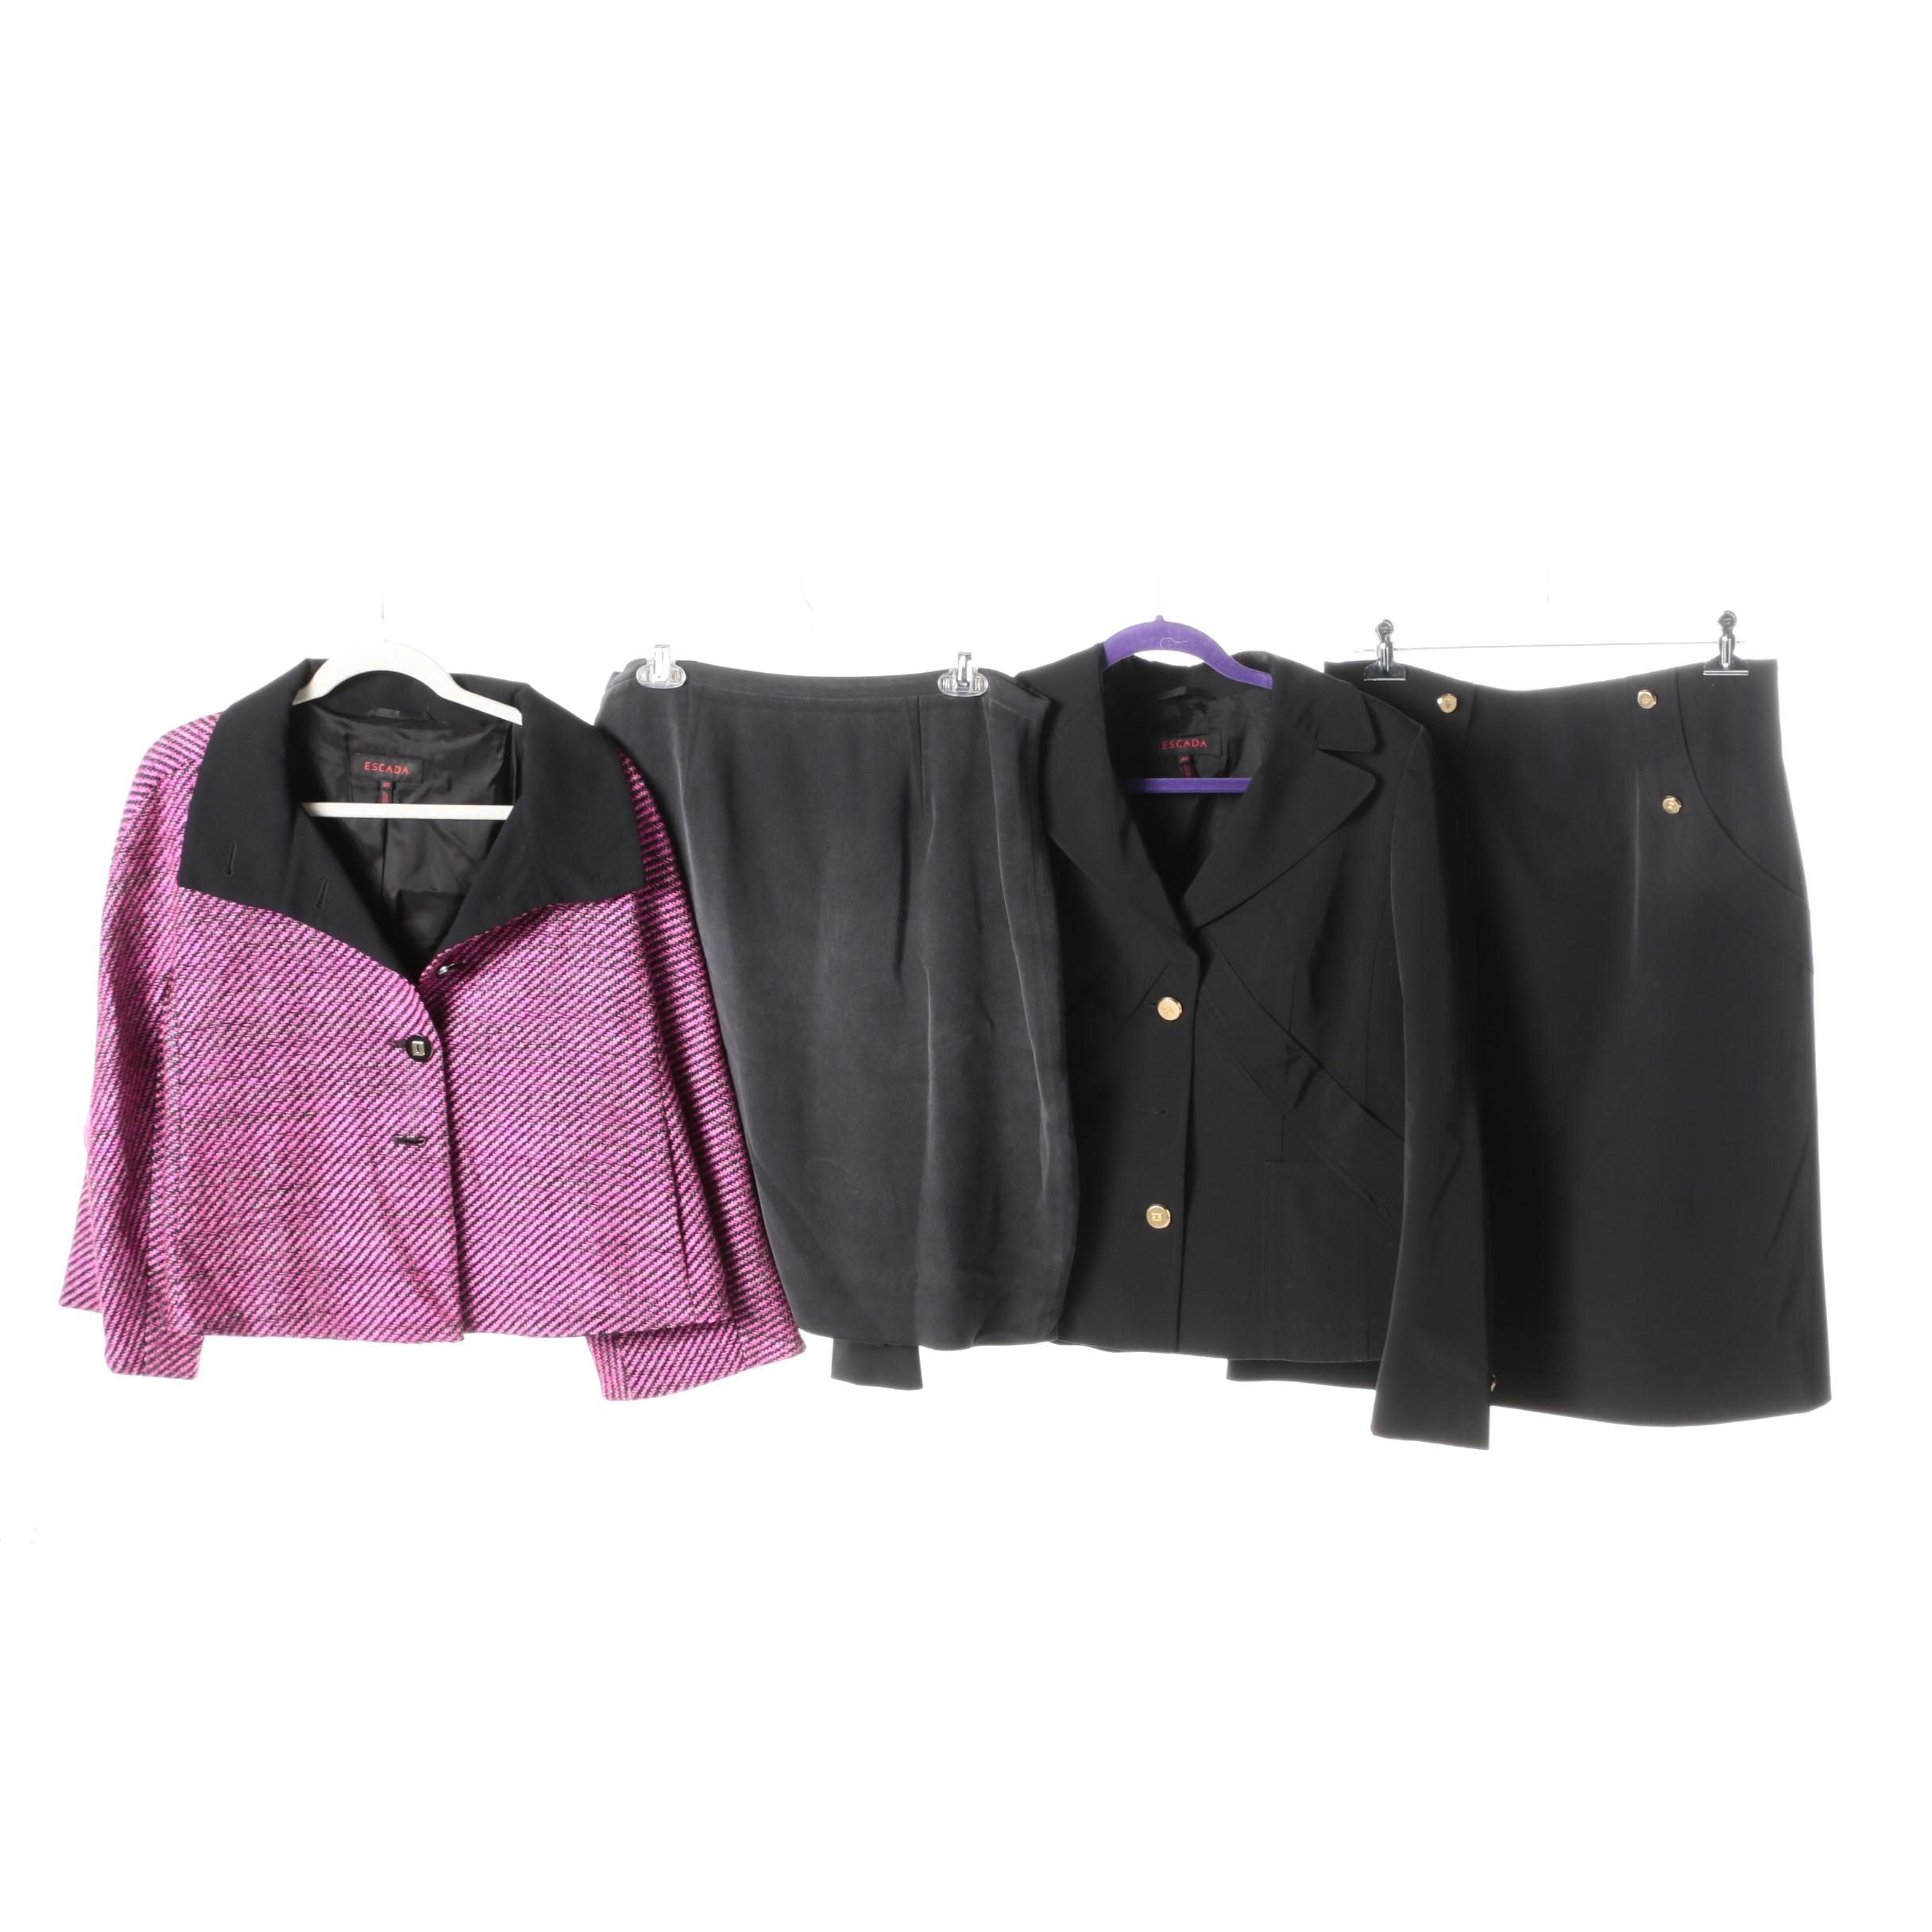 Skirt Suit, Pink Jacket, and Pencil Skirt Including Escada